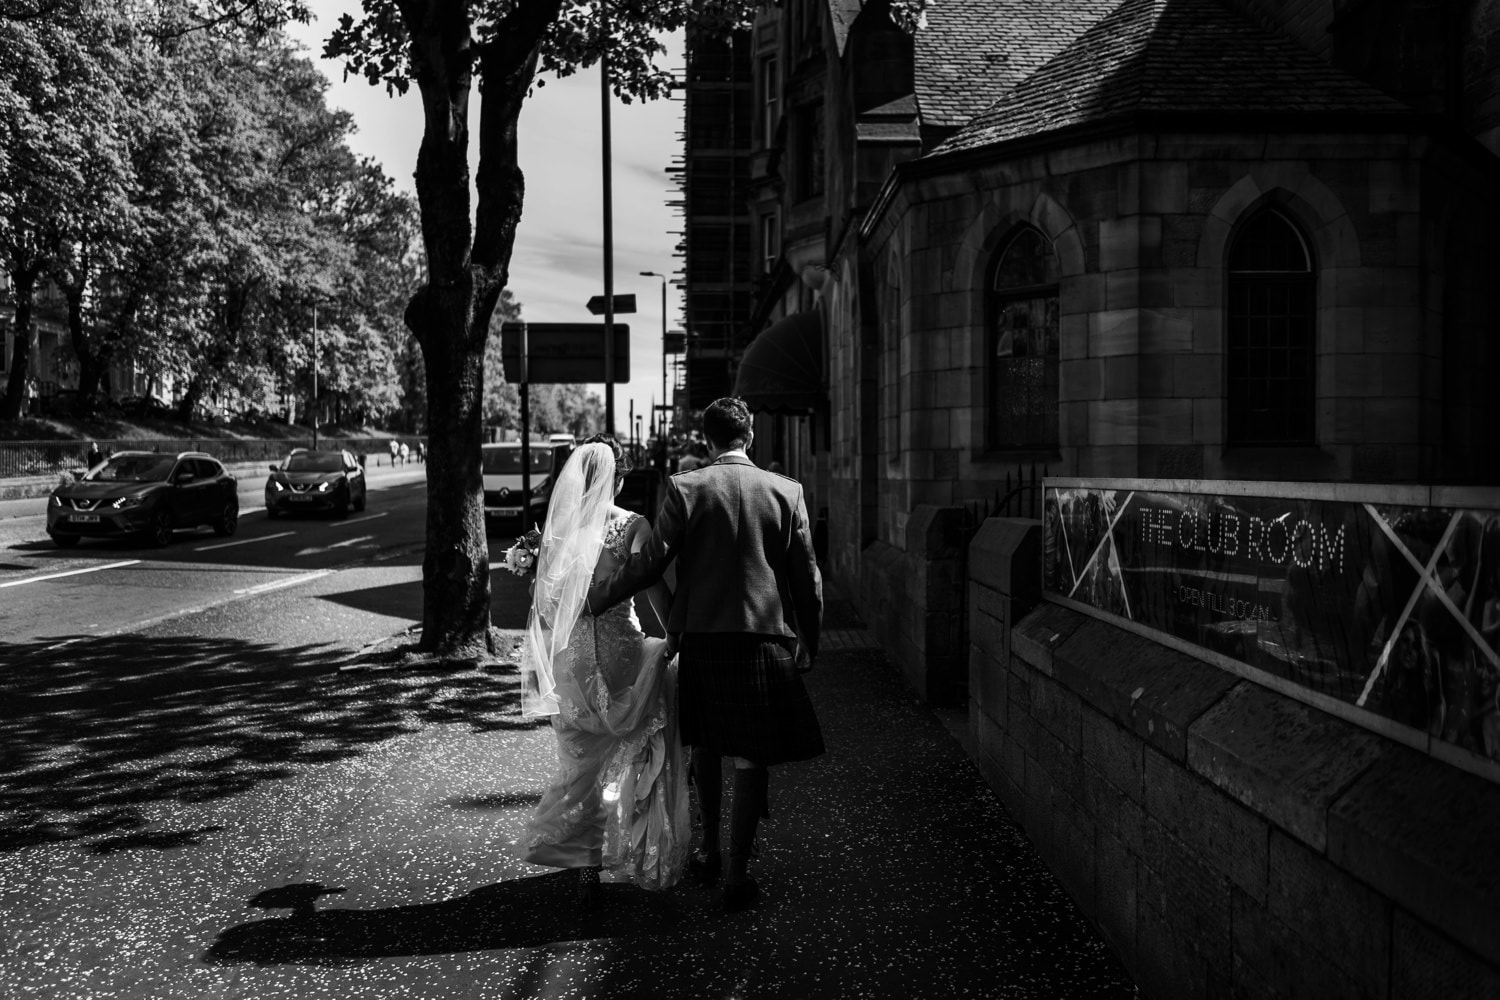 Bride and groom on streets of Glasgow in Scotland